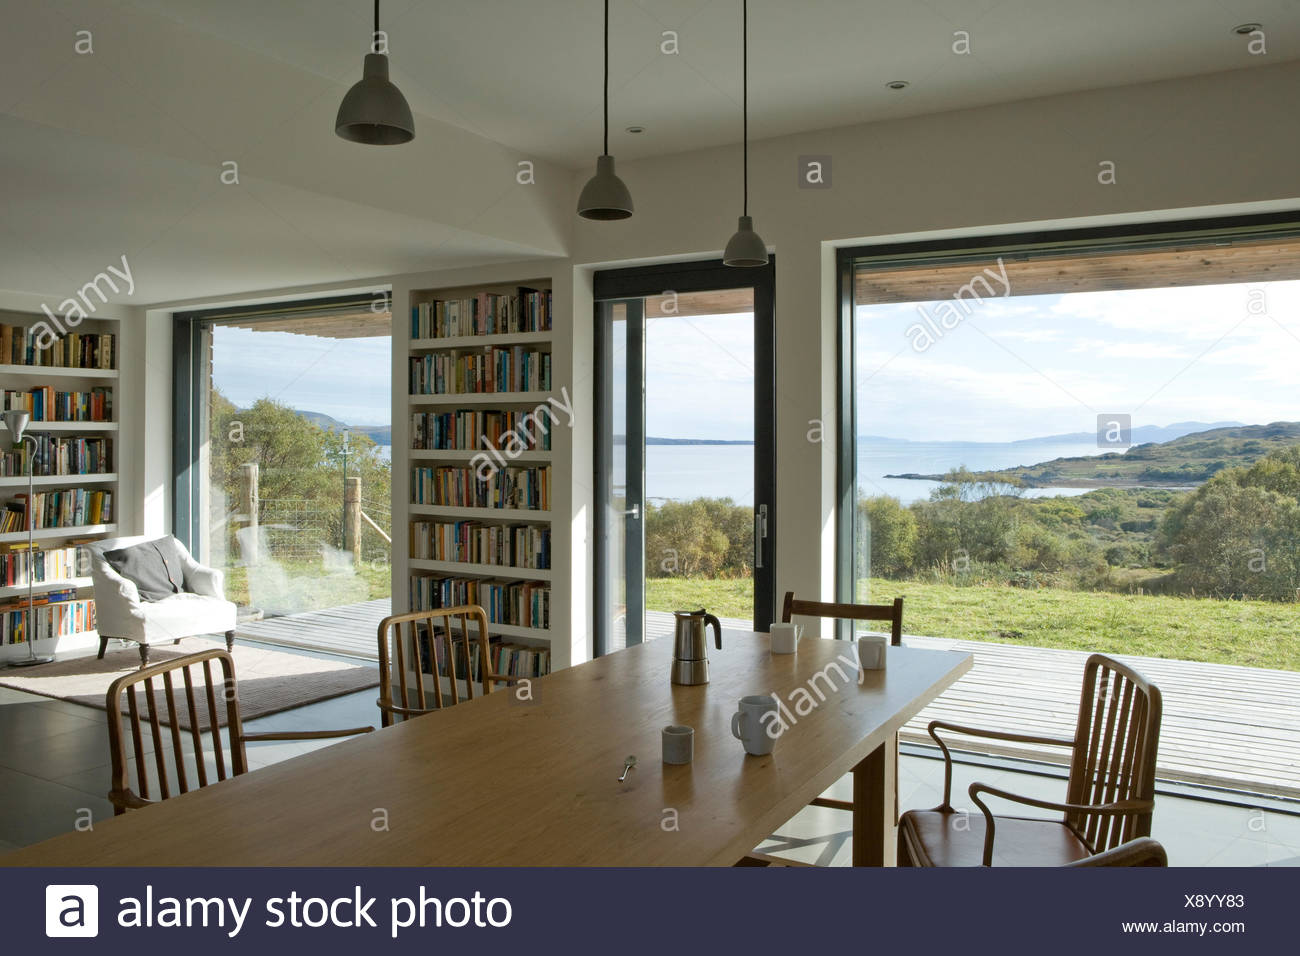 Beau Pale Wood Table And Chairs In Centre Of Modern Open Plan Dining Room With  View Of The Landscape Through Glass Walls